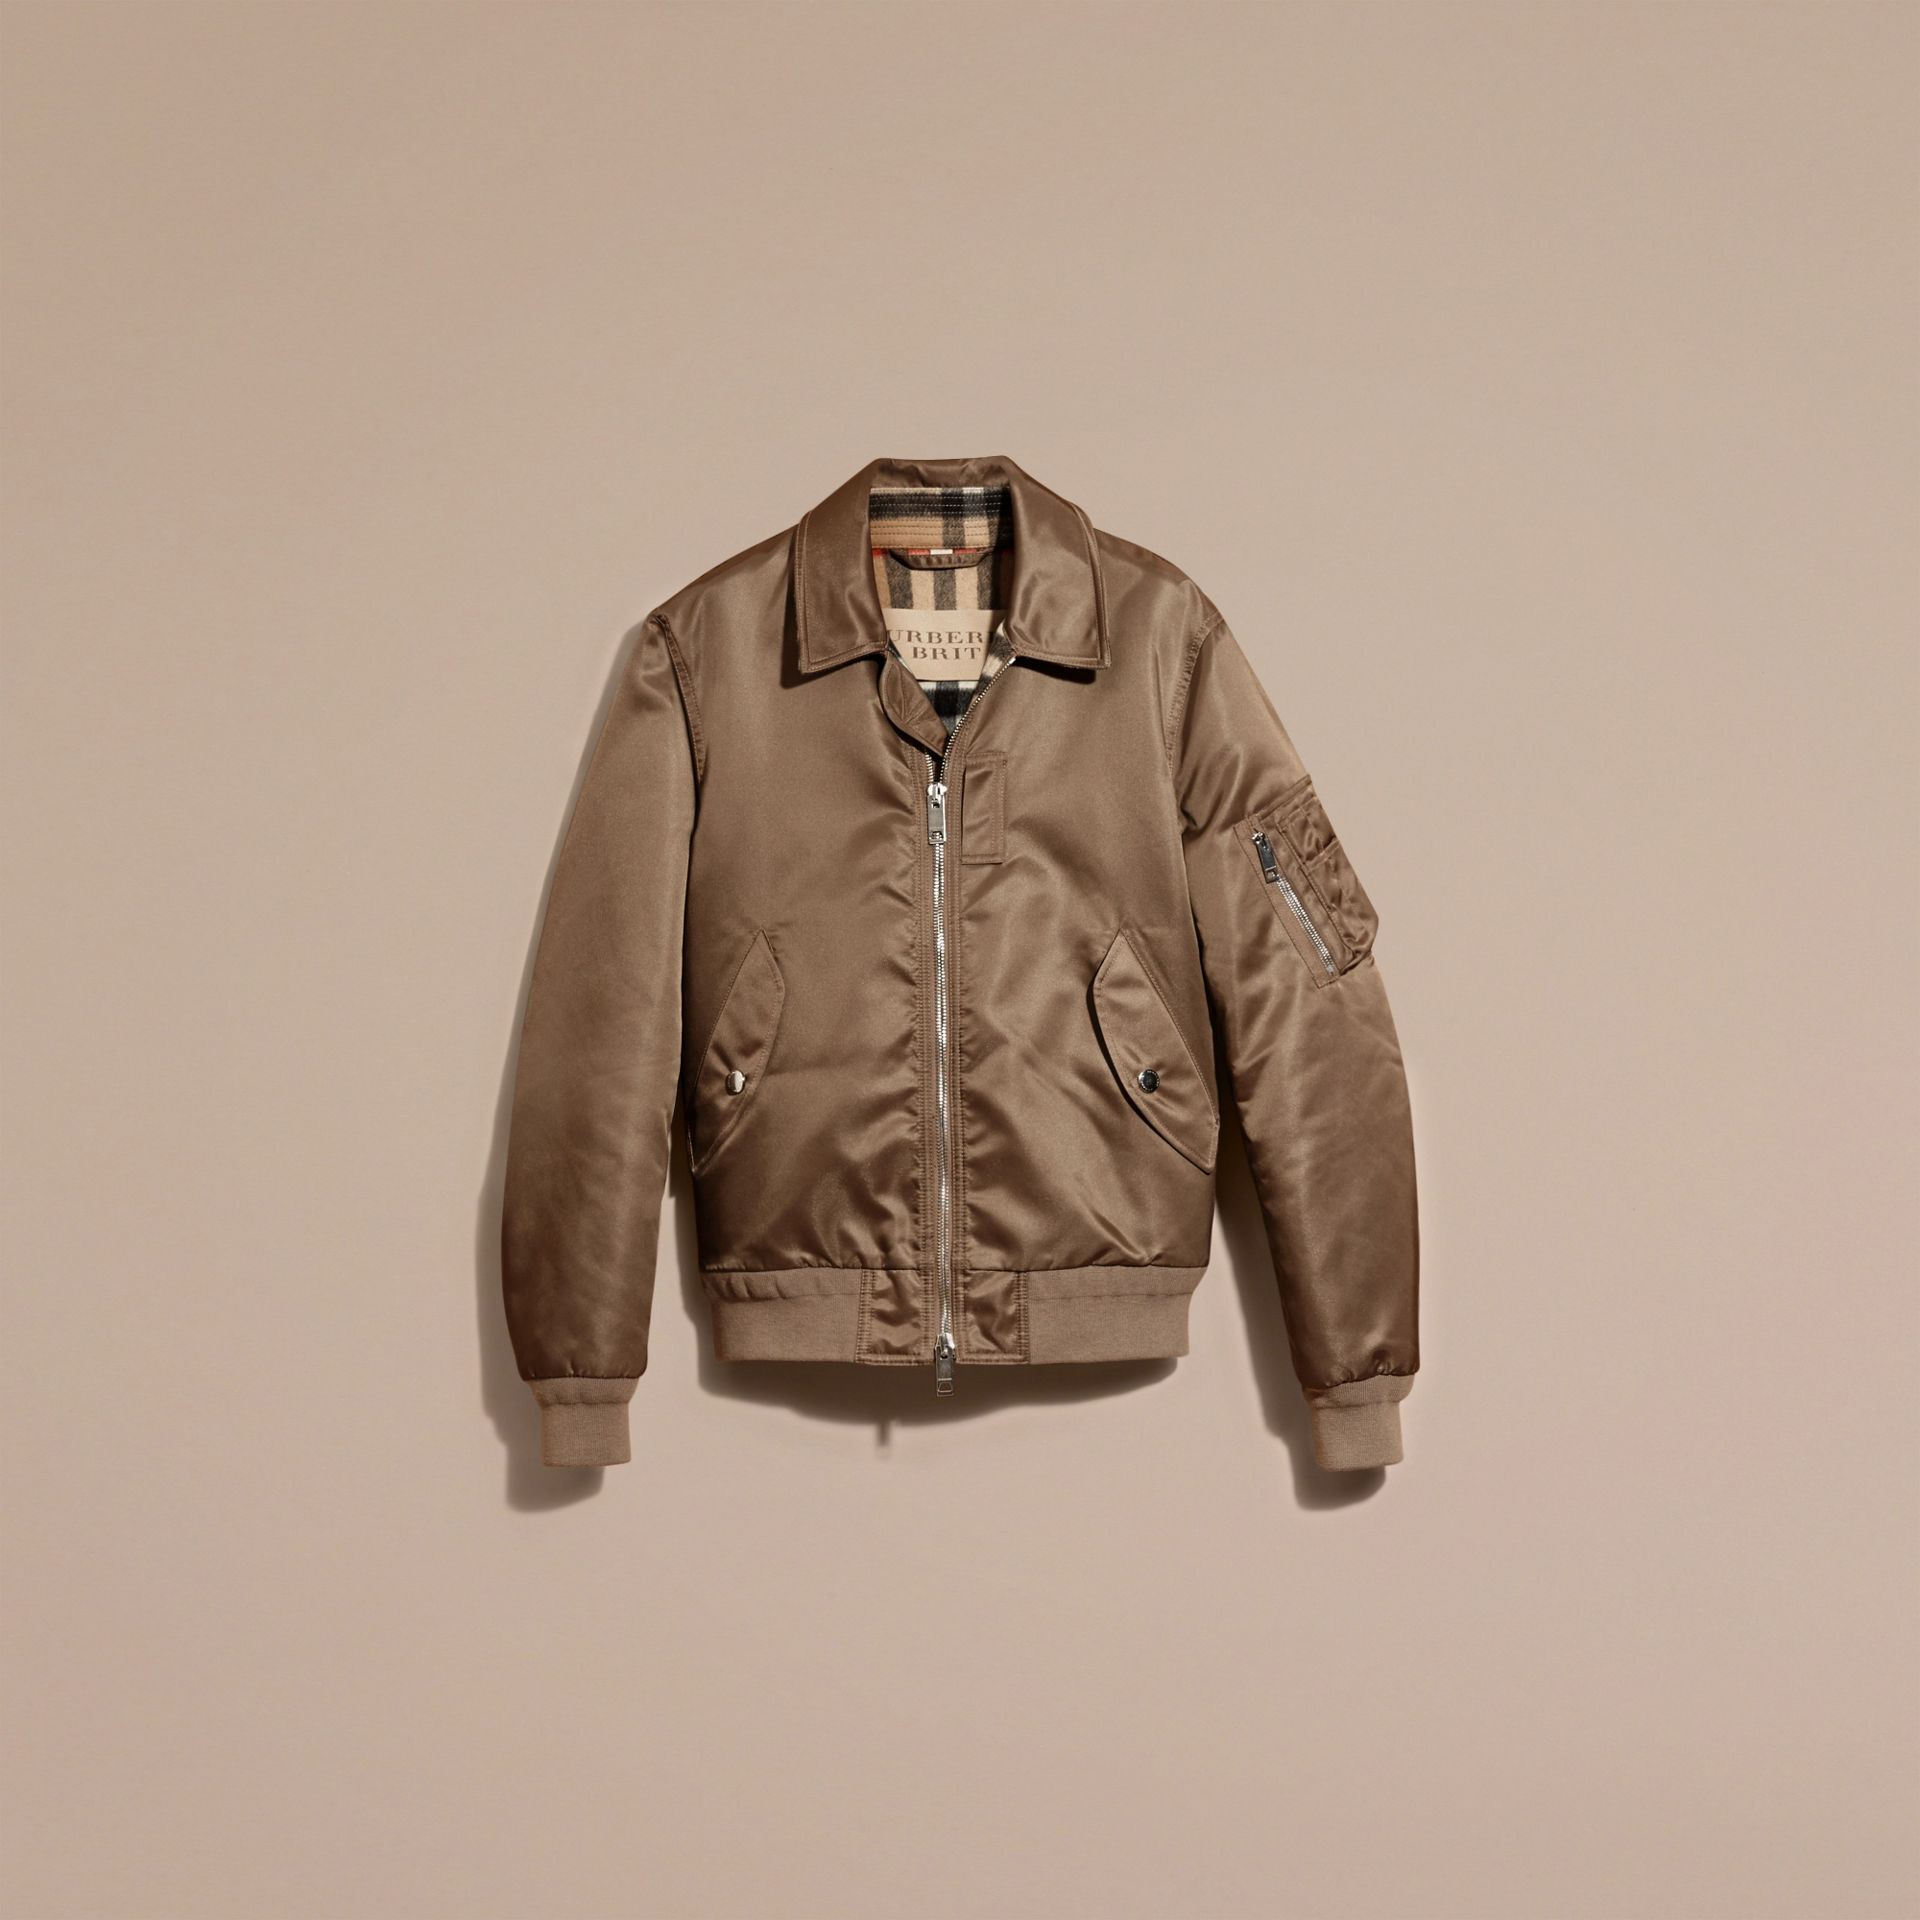 69830a45b Satin Bomber Jacket with Check Undercollar by Burberry